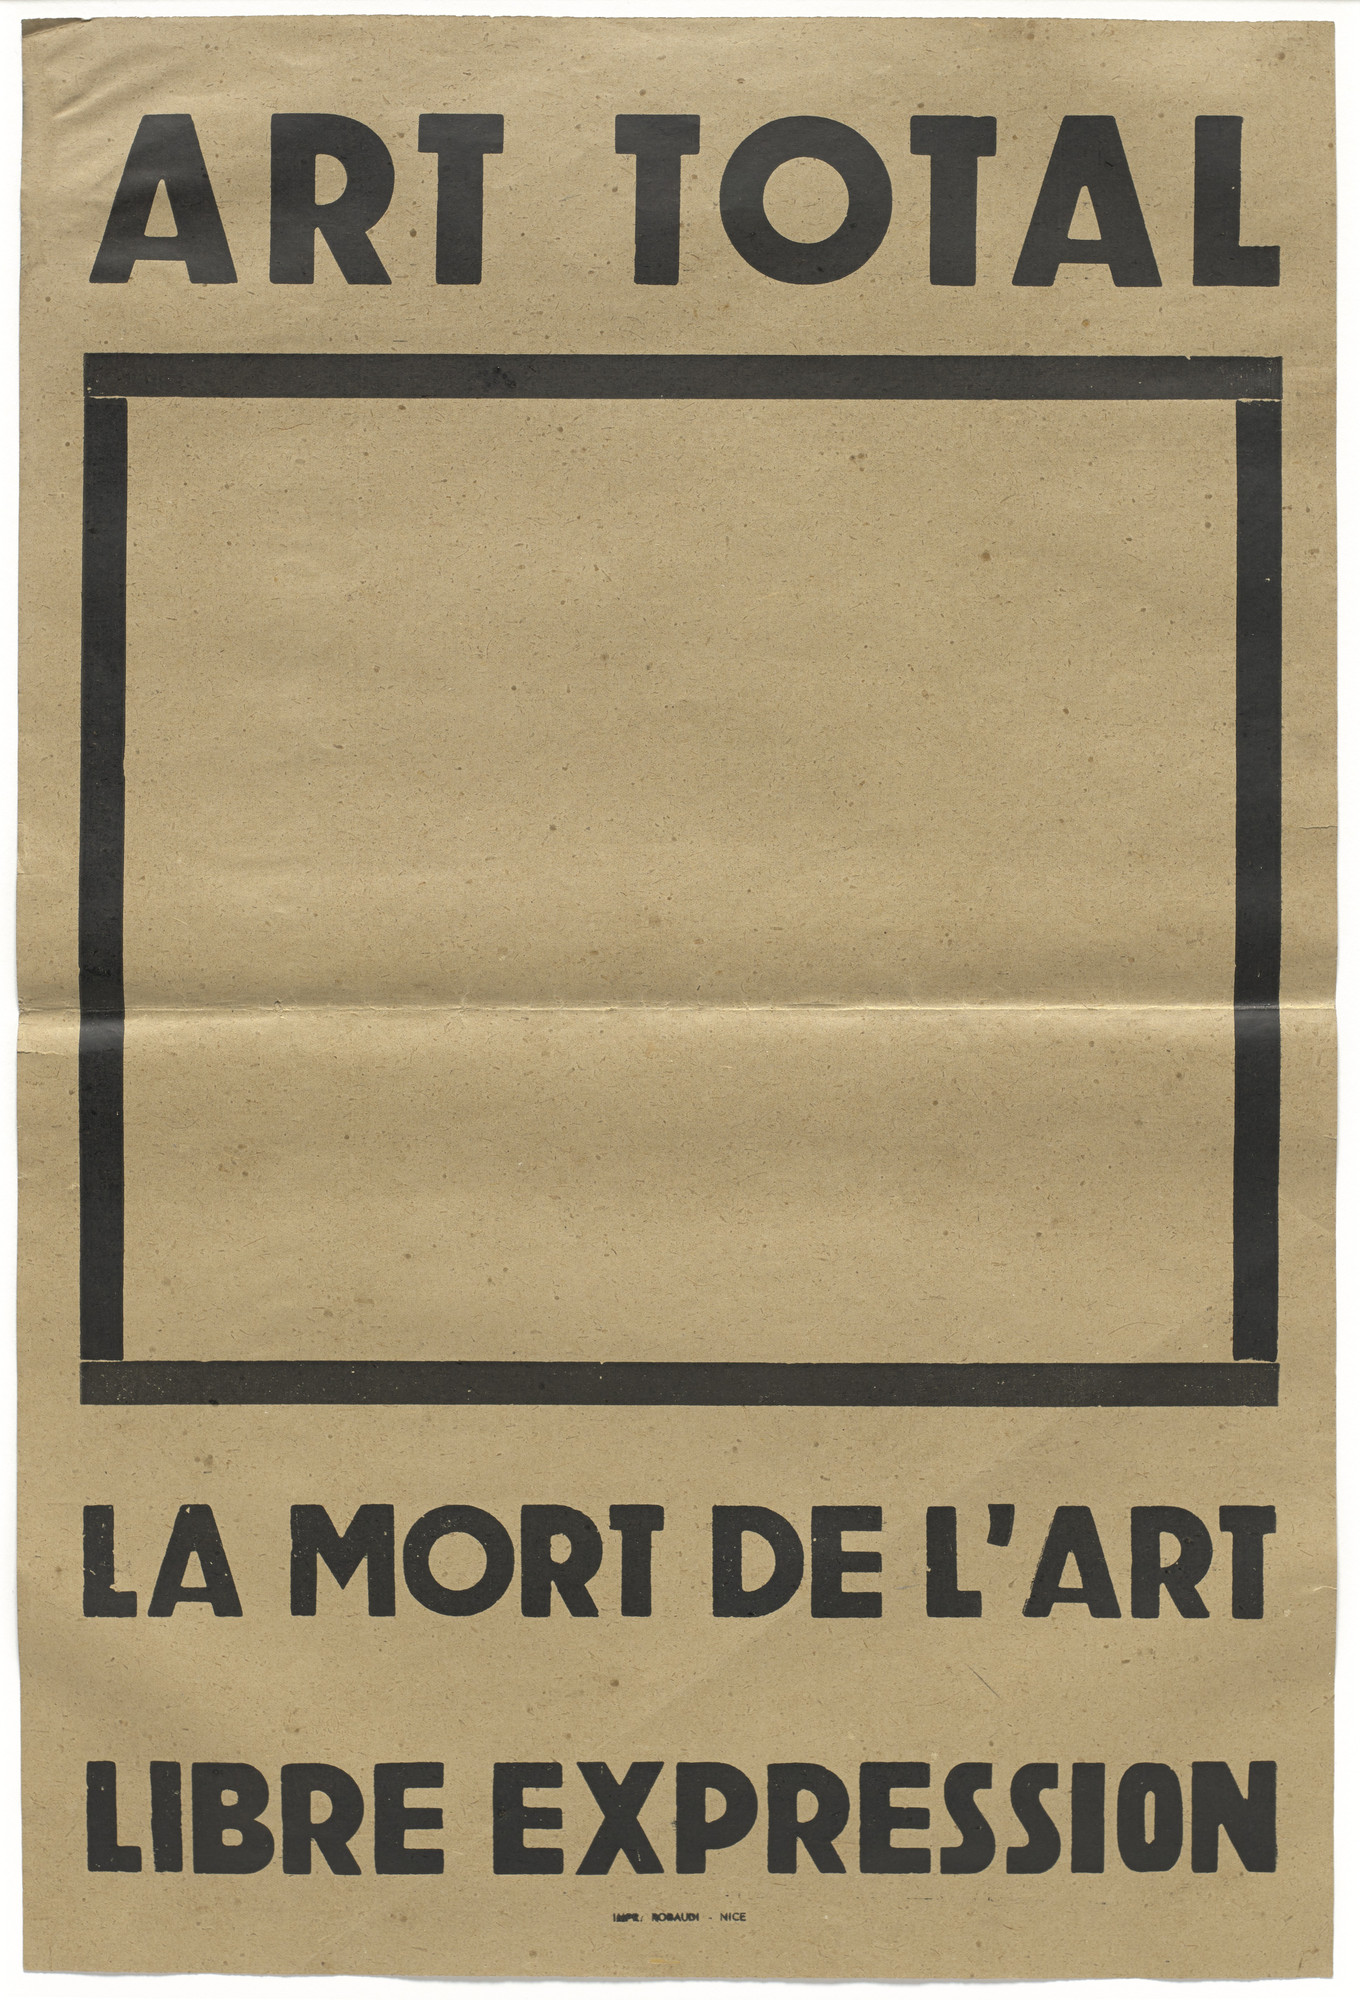 Ben Vautier. Art Total. 1964